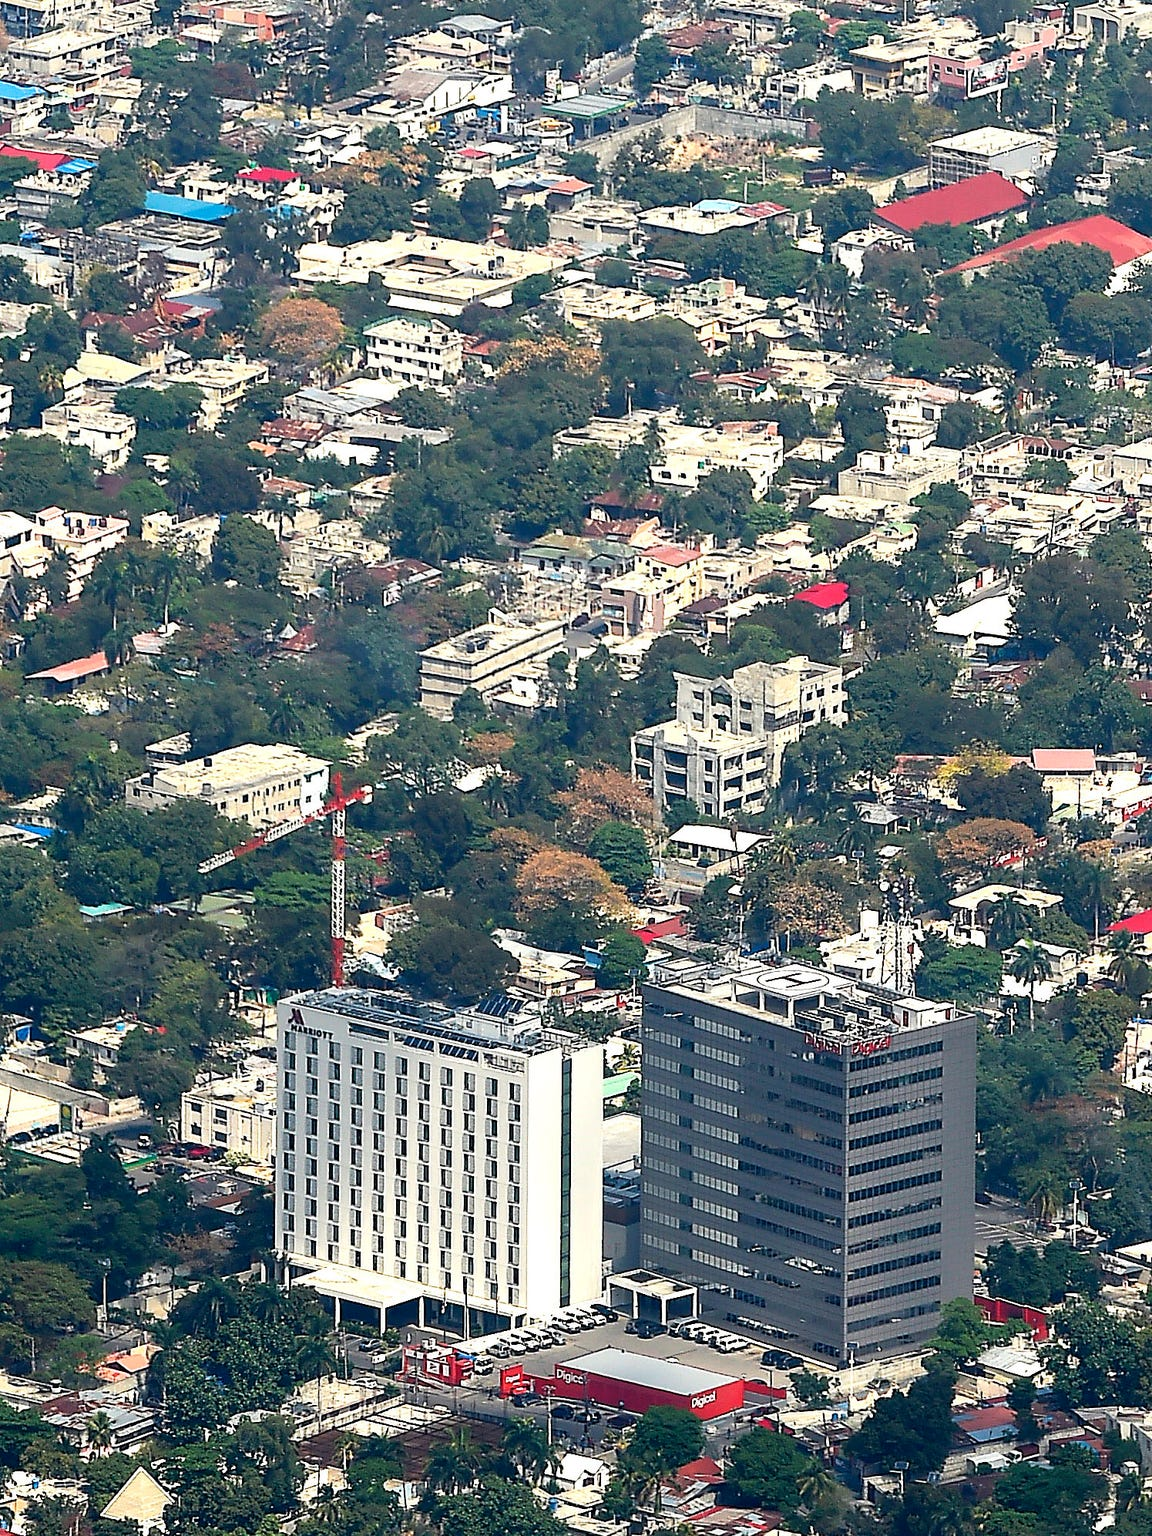 Aerial views of Port-au-Prince, Haiti, showing the